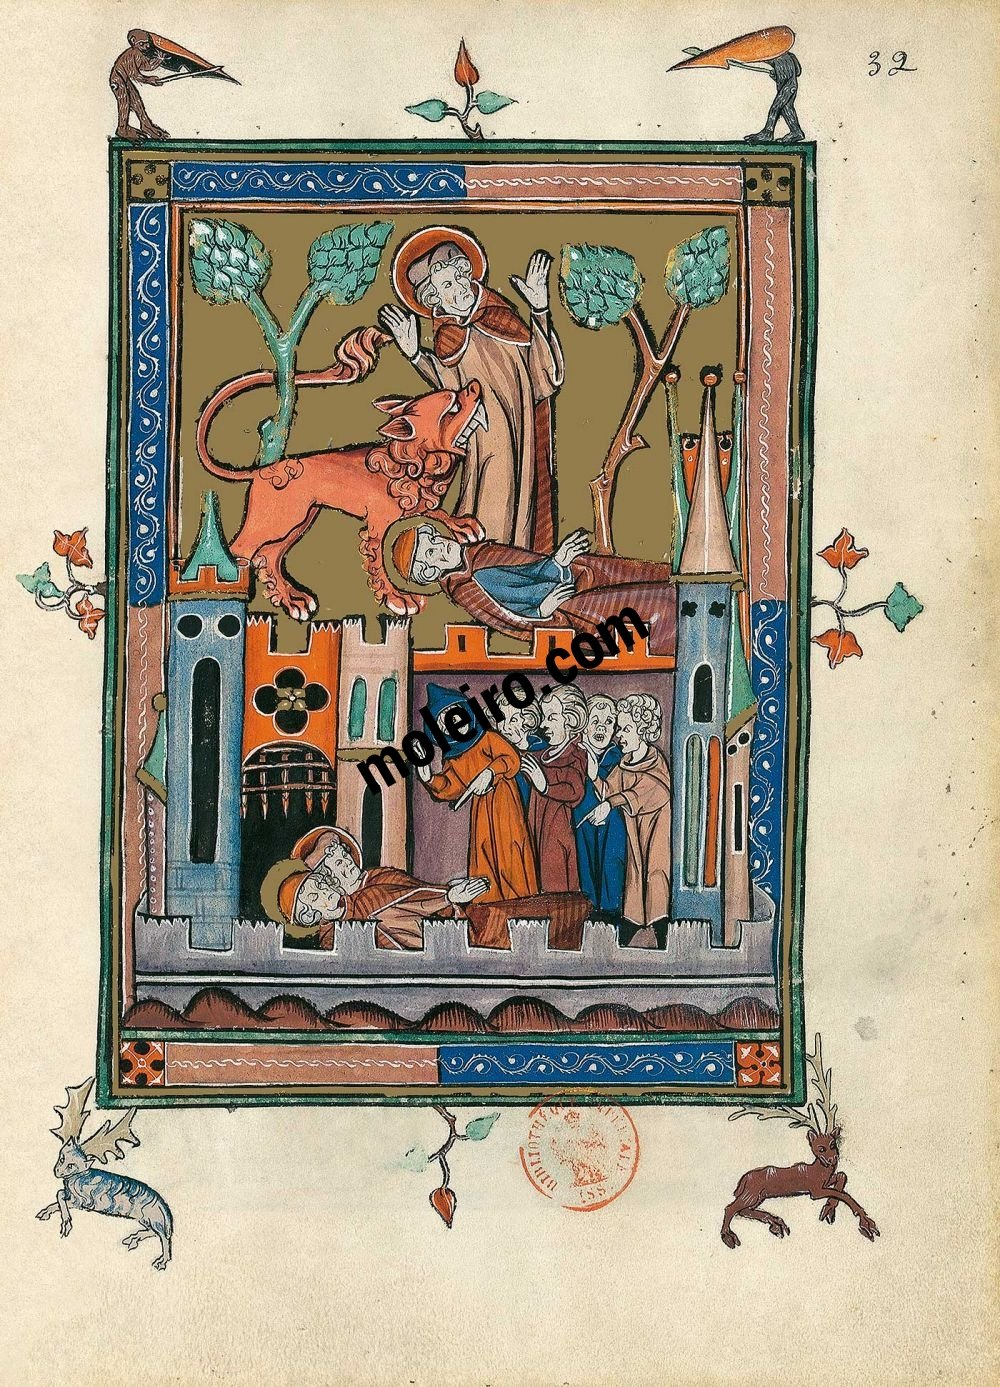 The Apocalypse of 1313 f. 32r, The death of the two witnesses (Ap. 11, 7-11)